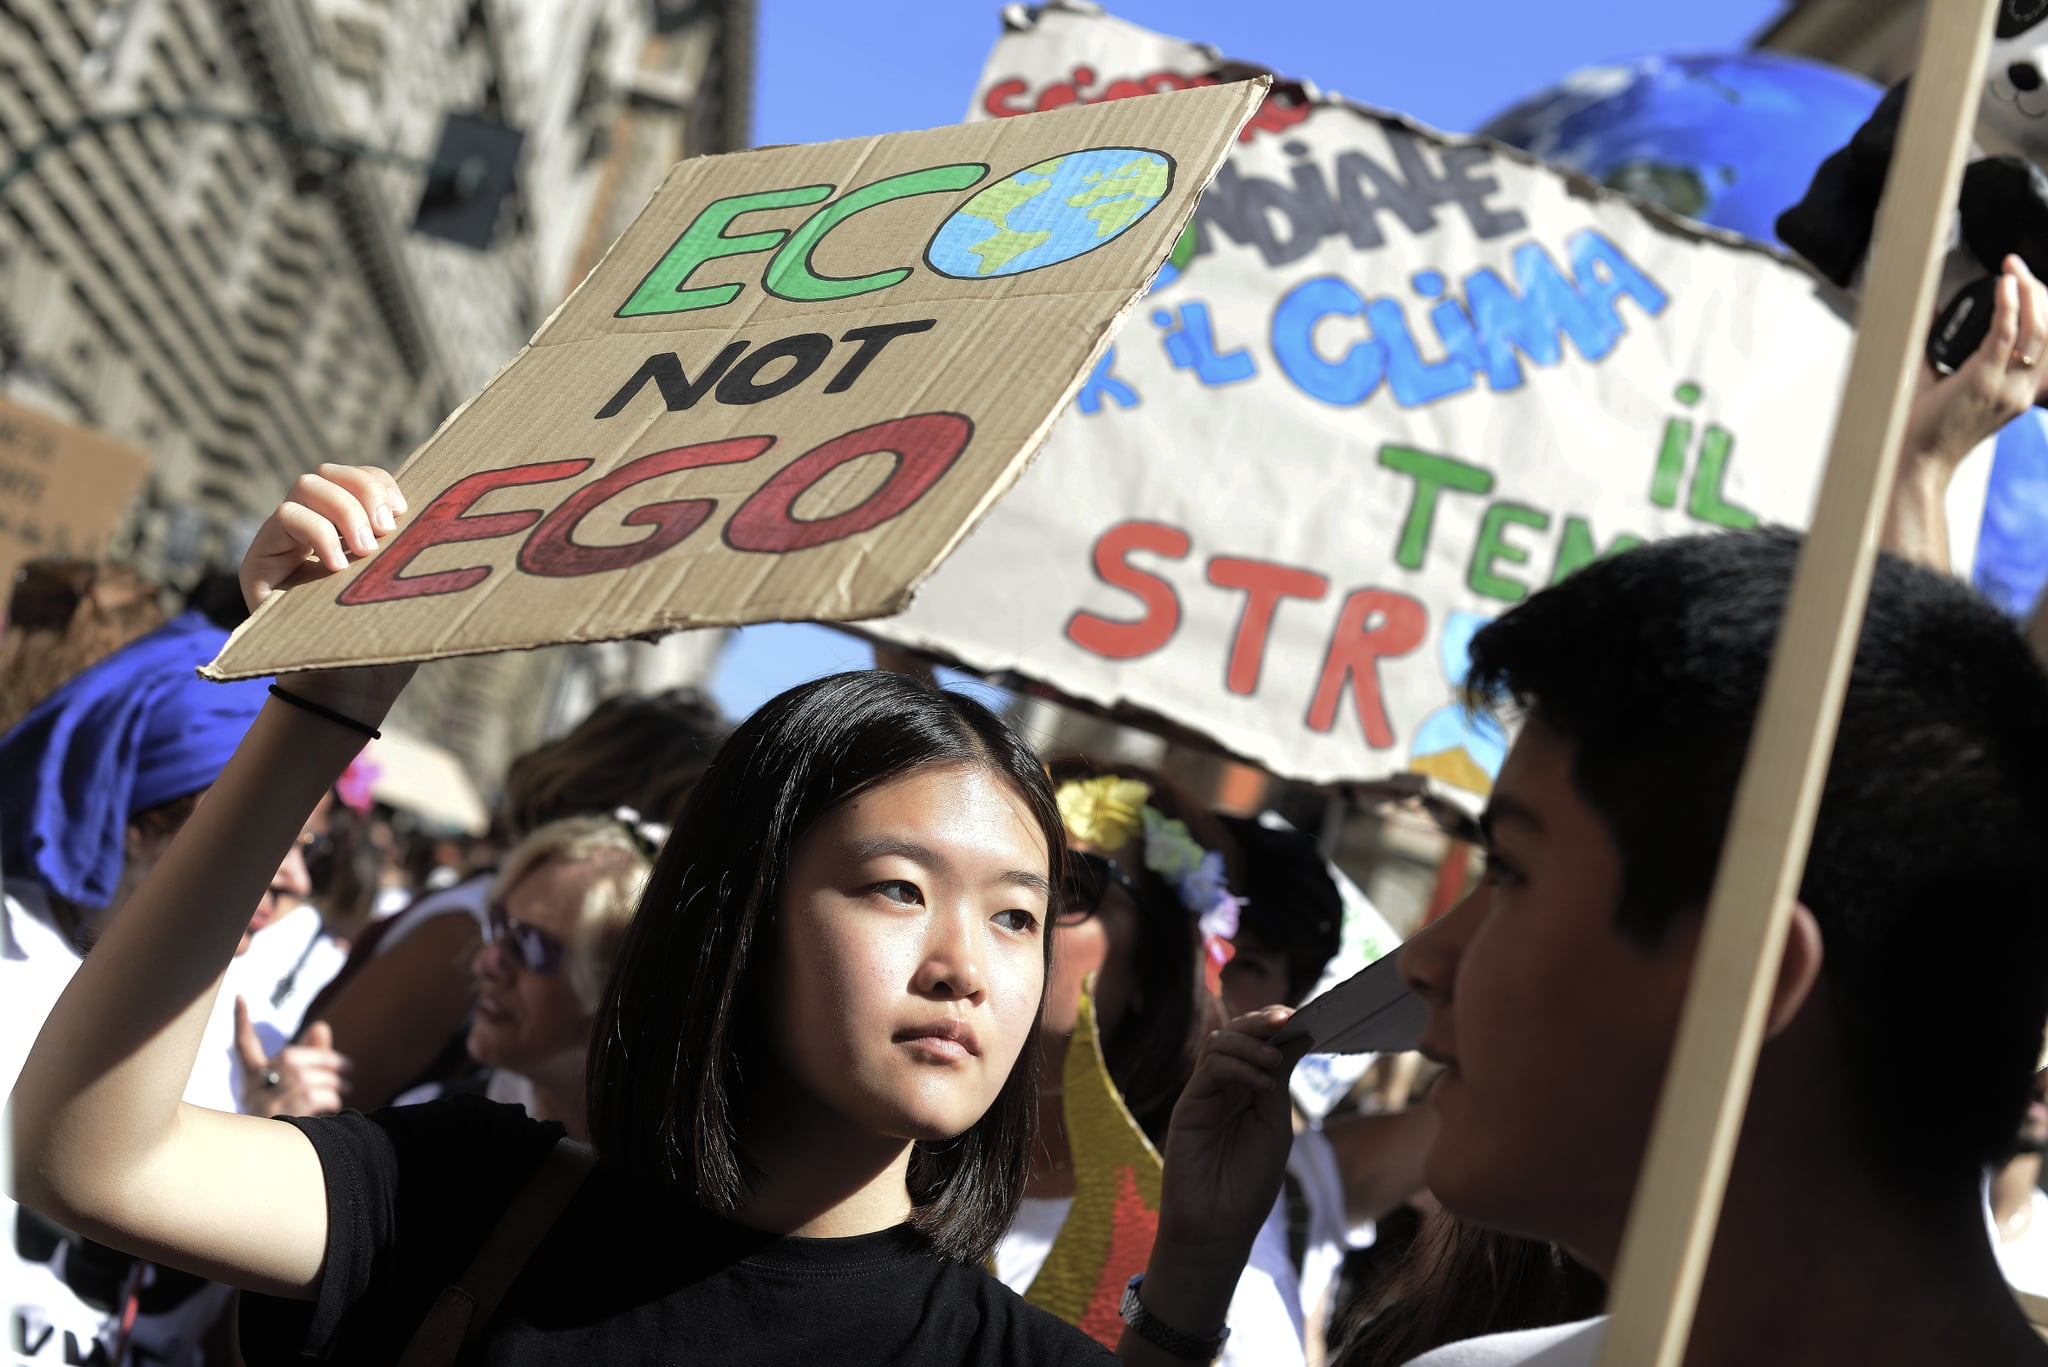 ROME, ITALY - SEPTEMBER 27: Thousands of students participate in the Global Strike For Future, the general strike for the planet launched by 16-year-old Greta Thunberg who has become a symbol of the fight against climate change, on September 27, 2019 in Rome, Italy. (Photo by Simona Granati - Corbis/Corbis via Getty Images)